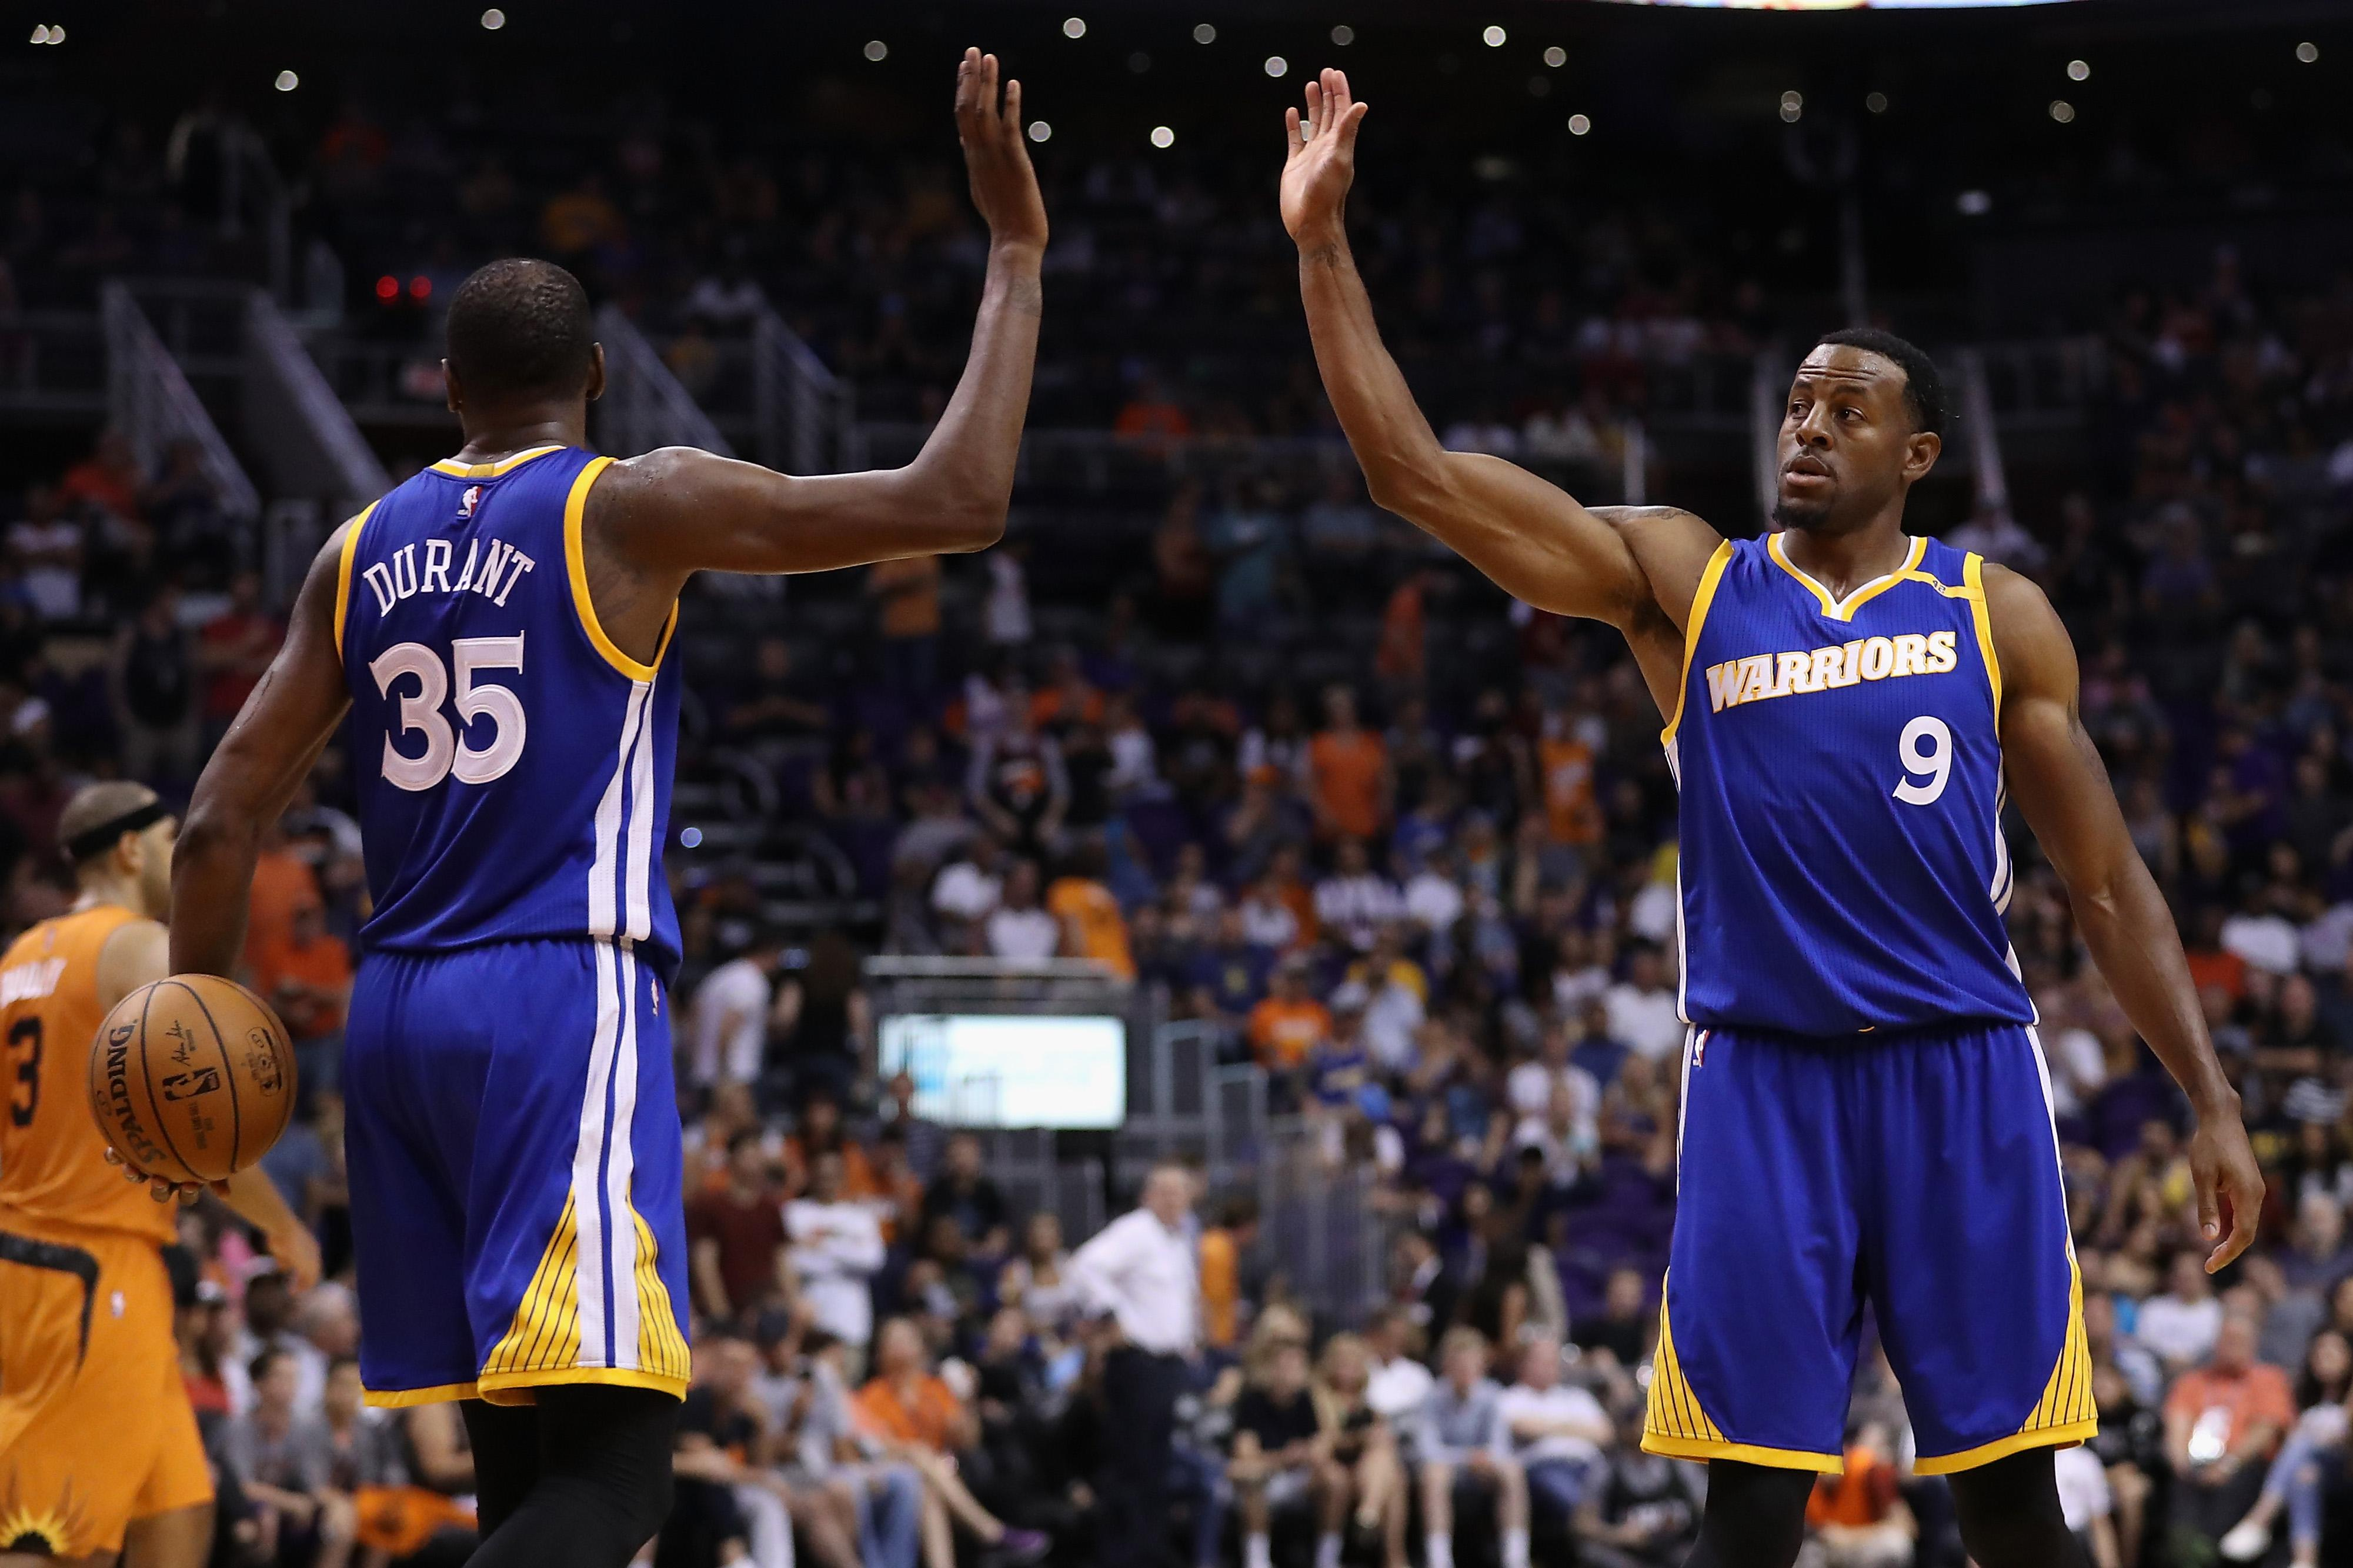 Kevin Durant Is The Greatest Scorer In NBA History, Iguodala Says